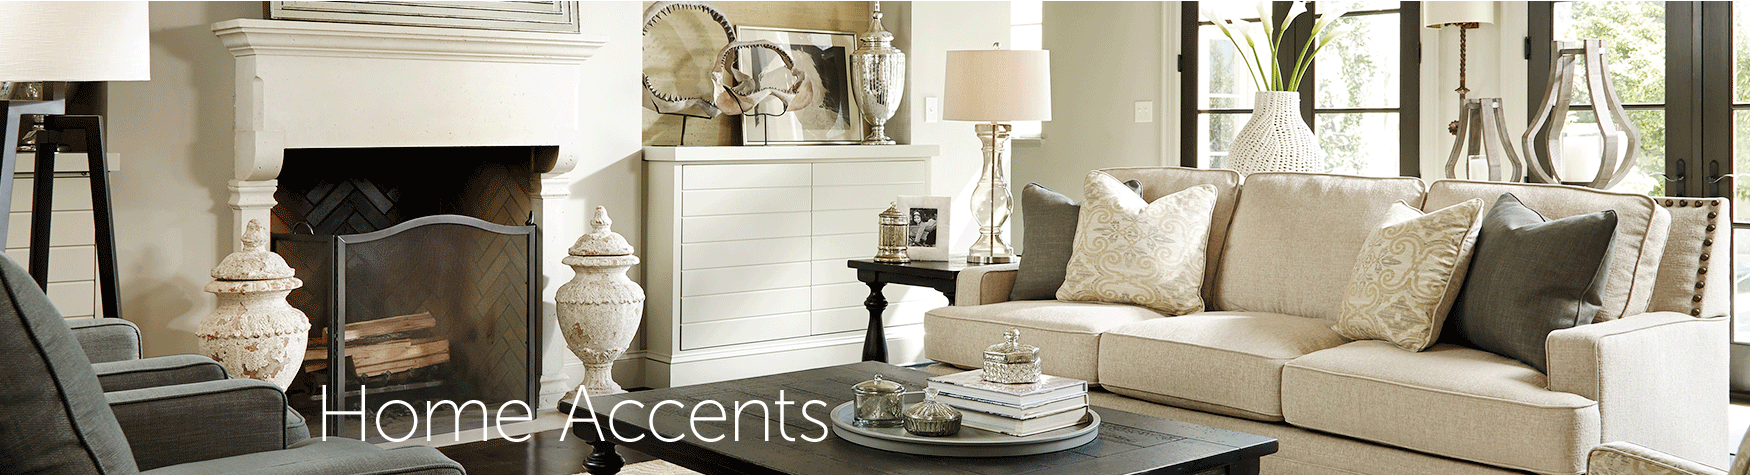 home-accents-banner.png